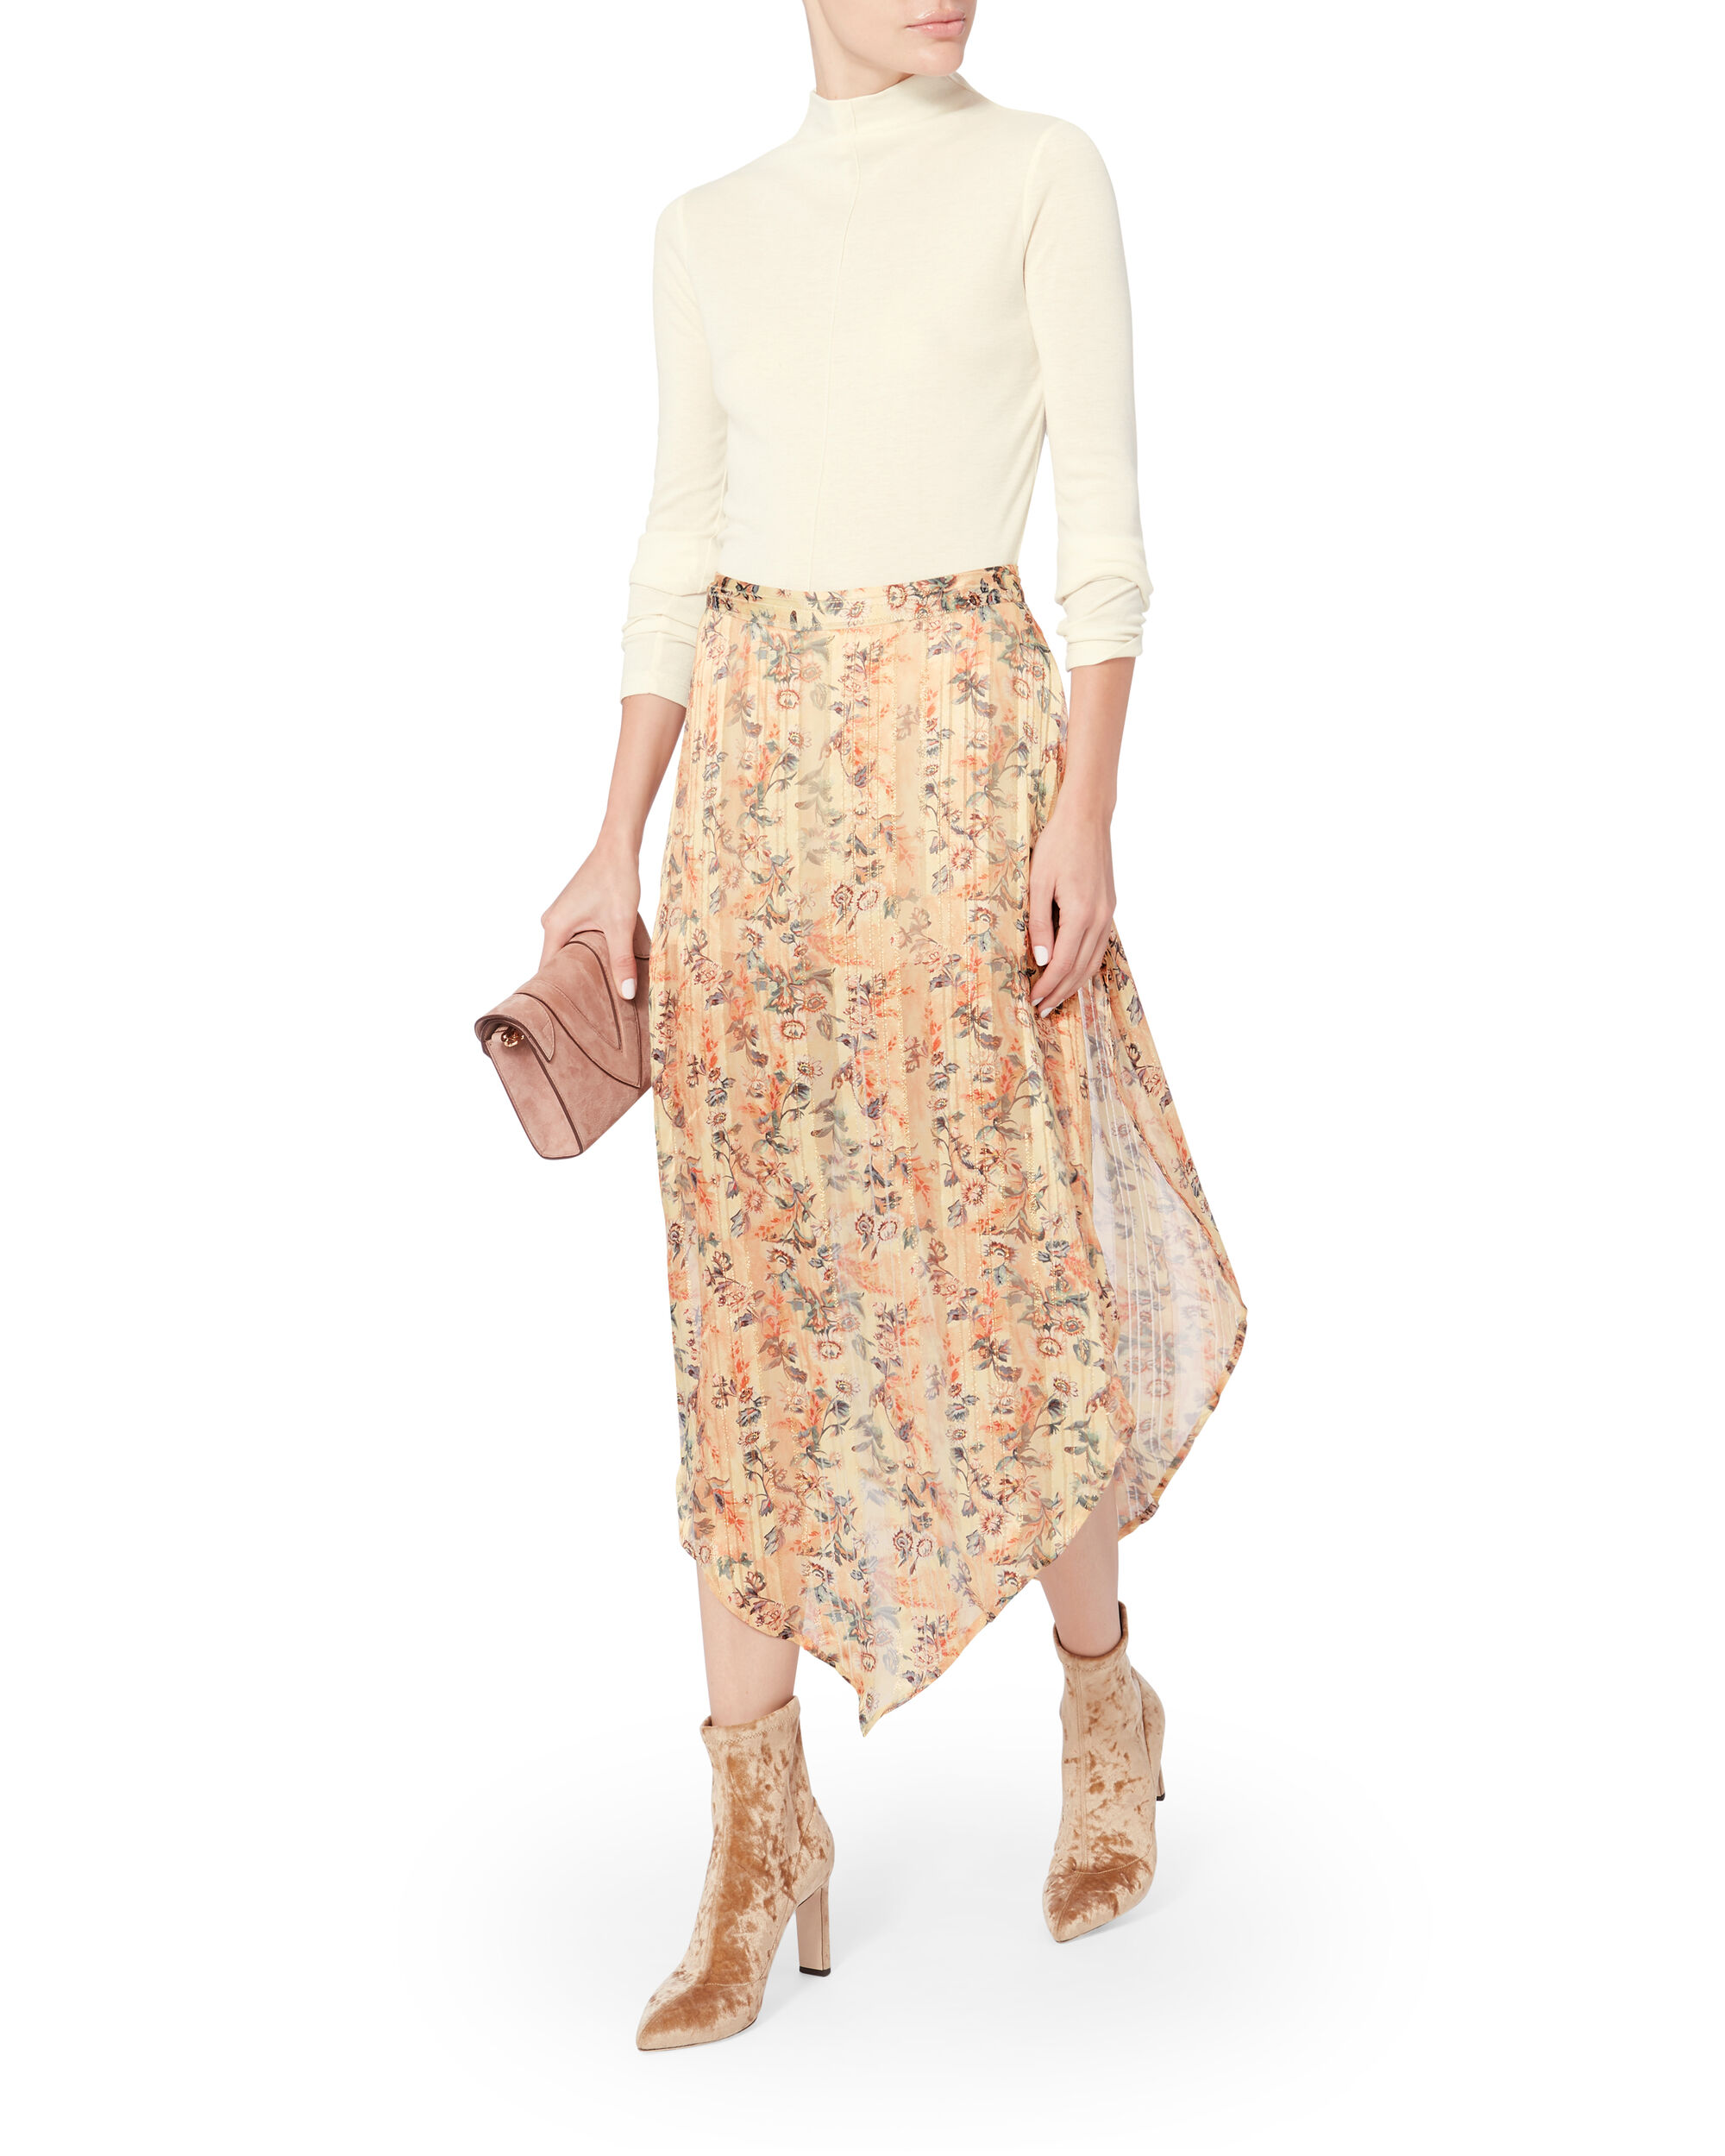 Anastasia Slayer Maxi Skirt, PRINT, hi-res